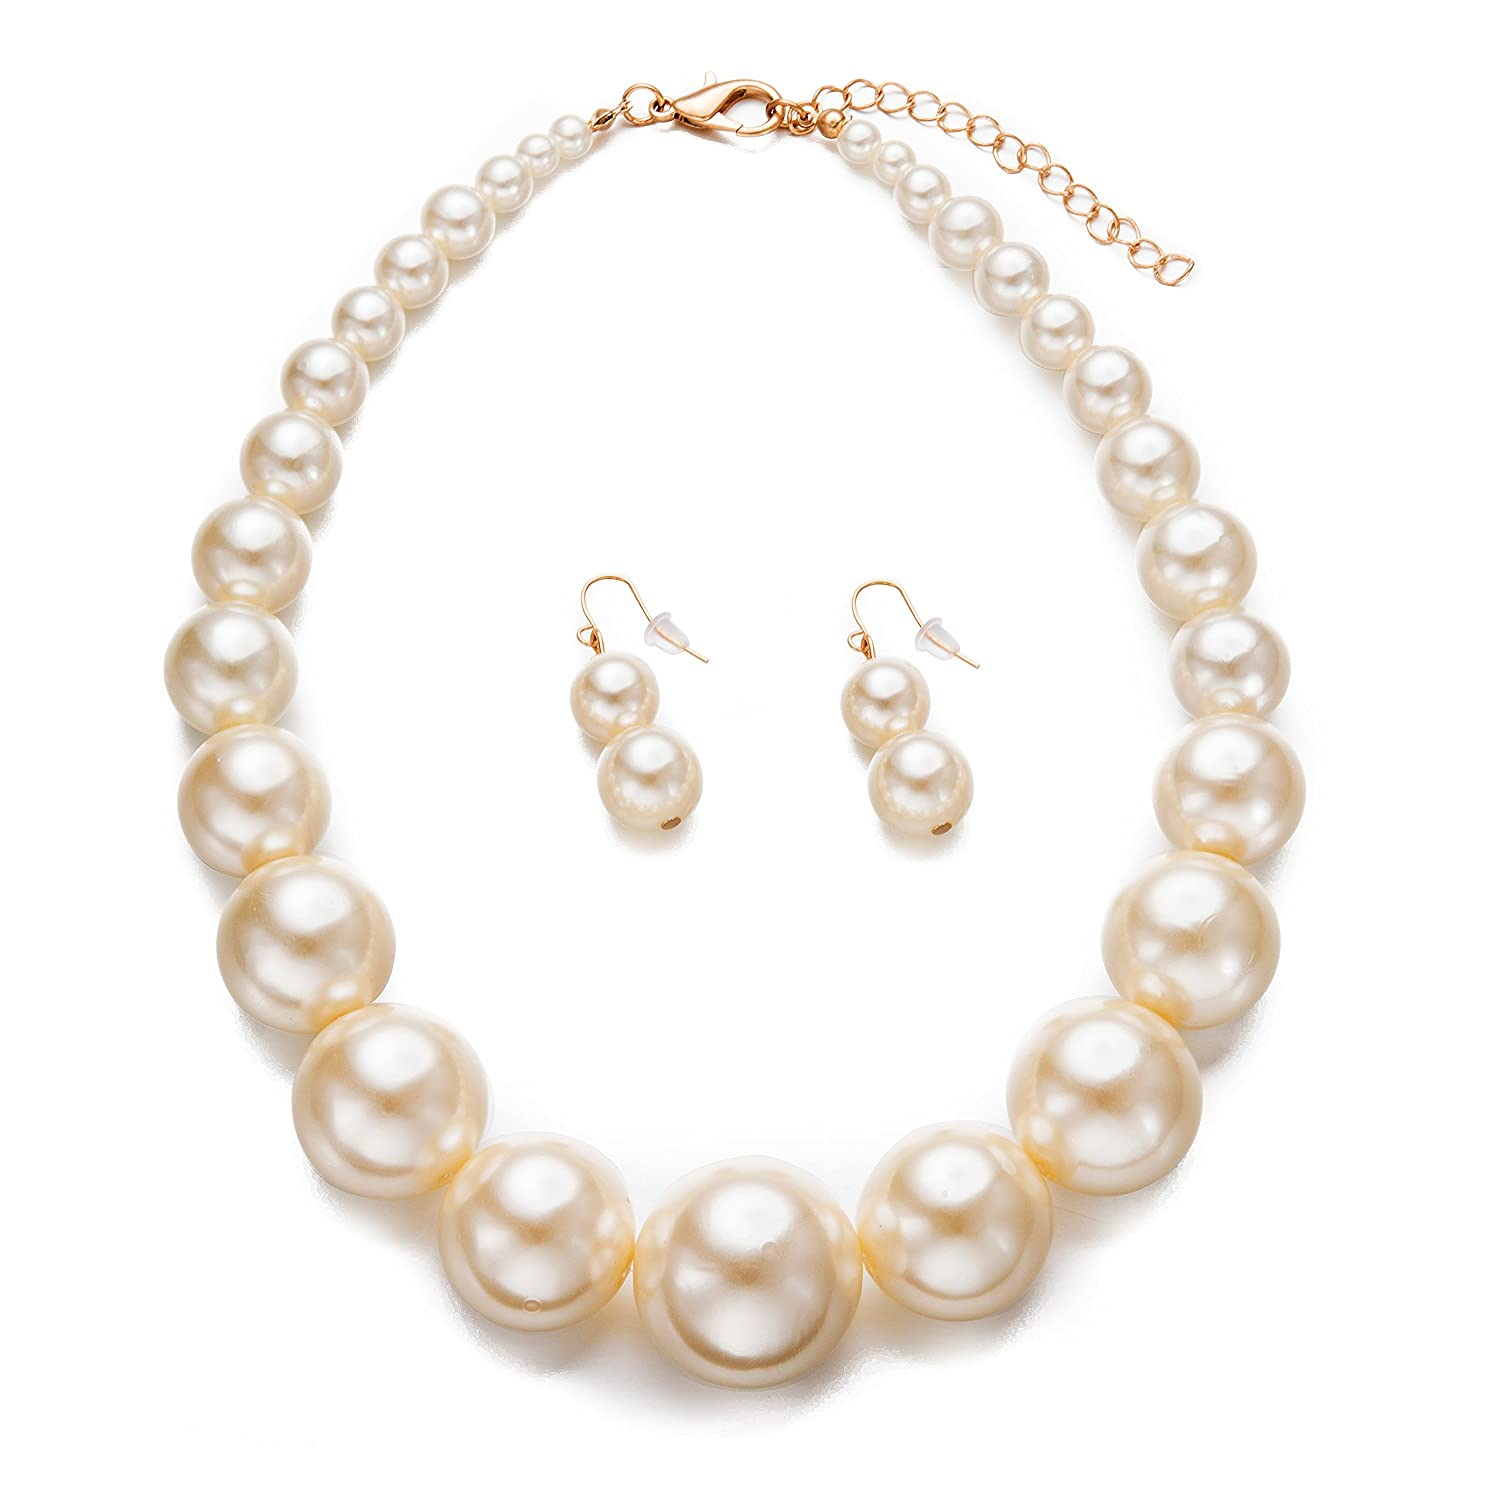 earring pacific pearls earrings triple sea collection gift product rakuten pacificpearl sulu shop giant drop set pearl